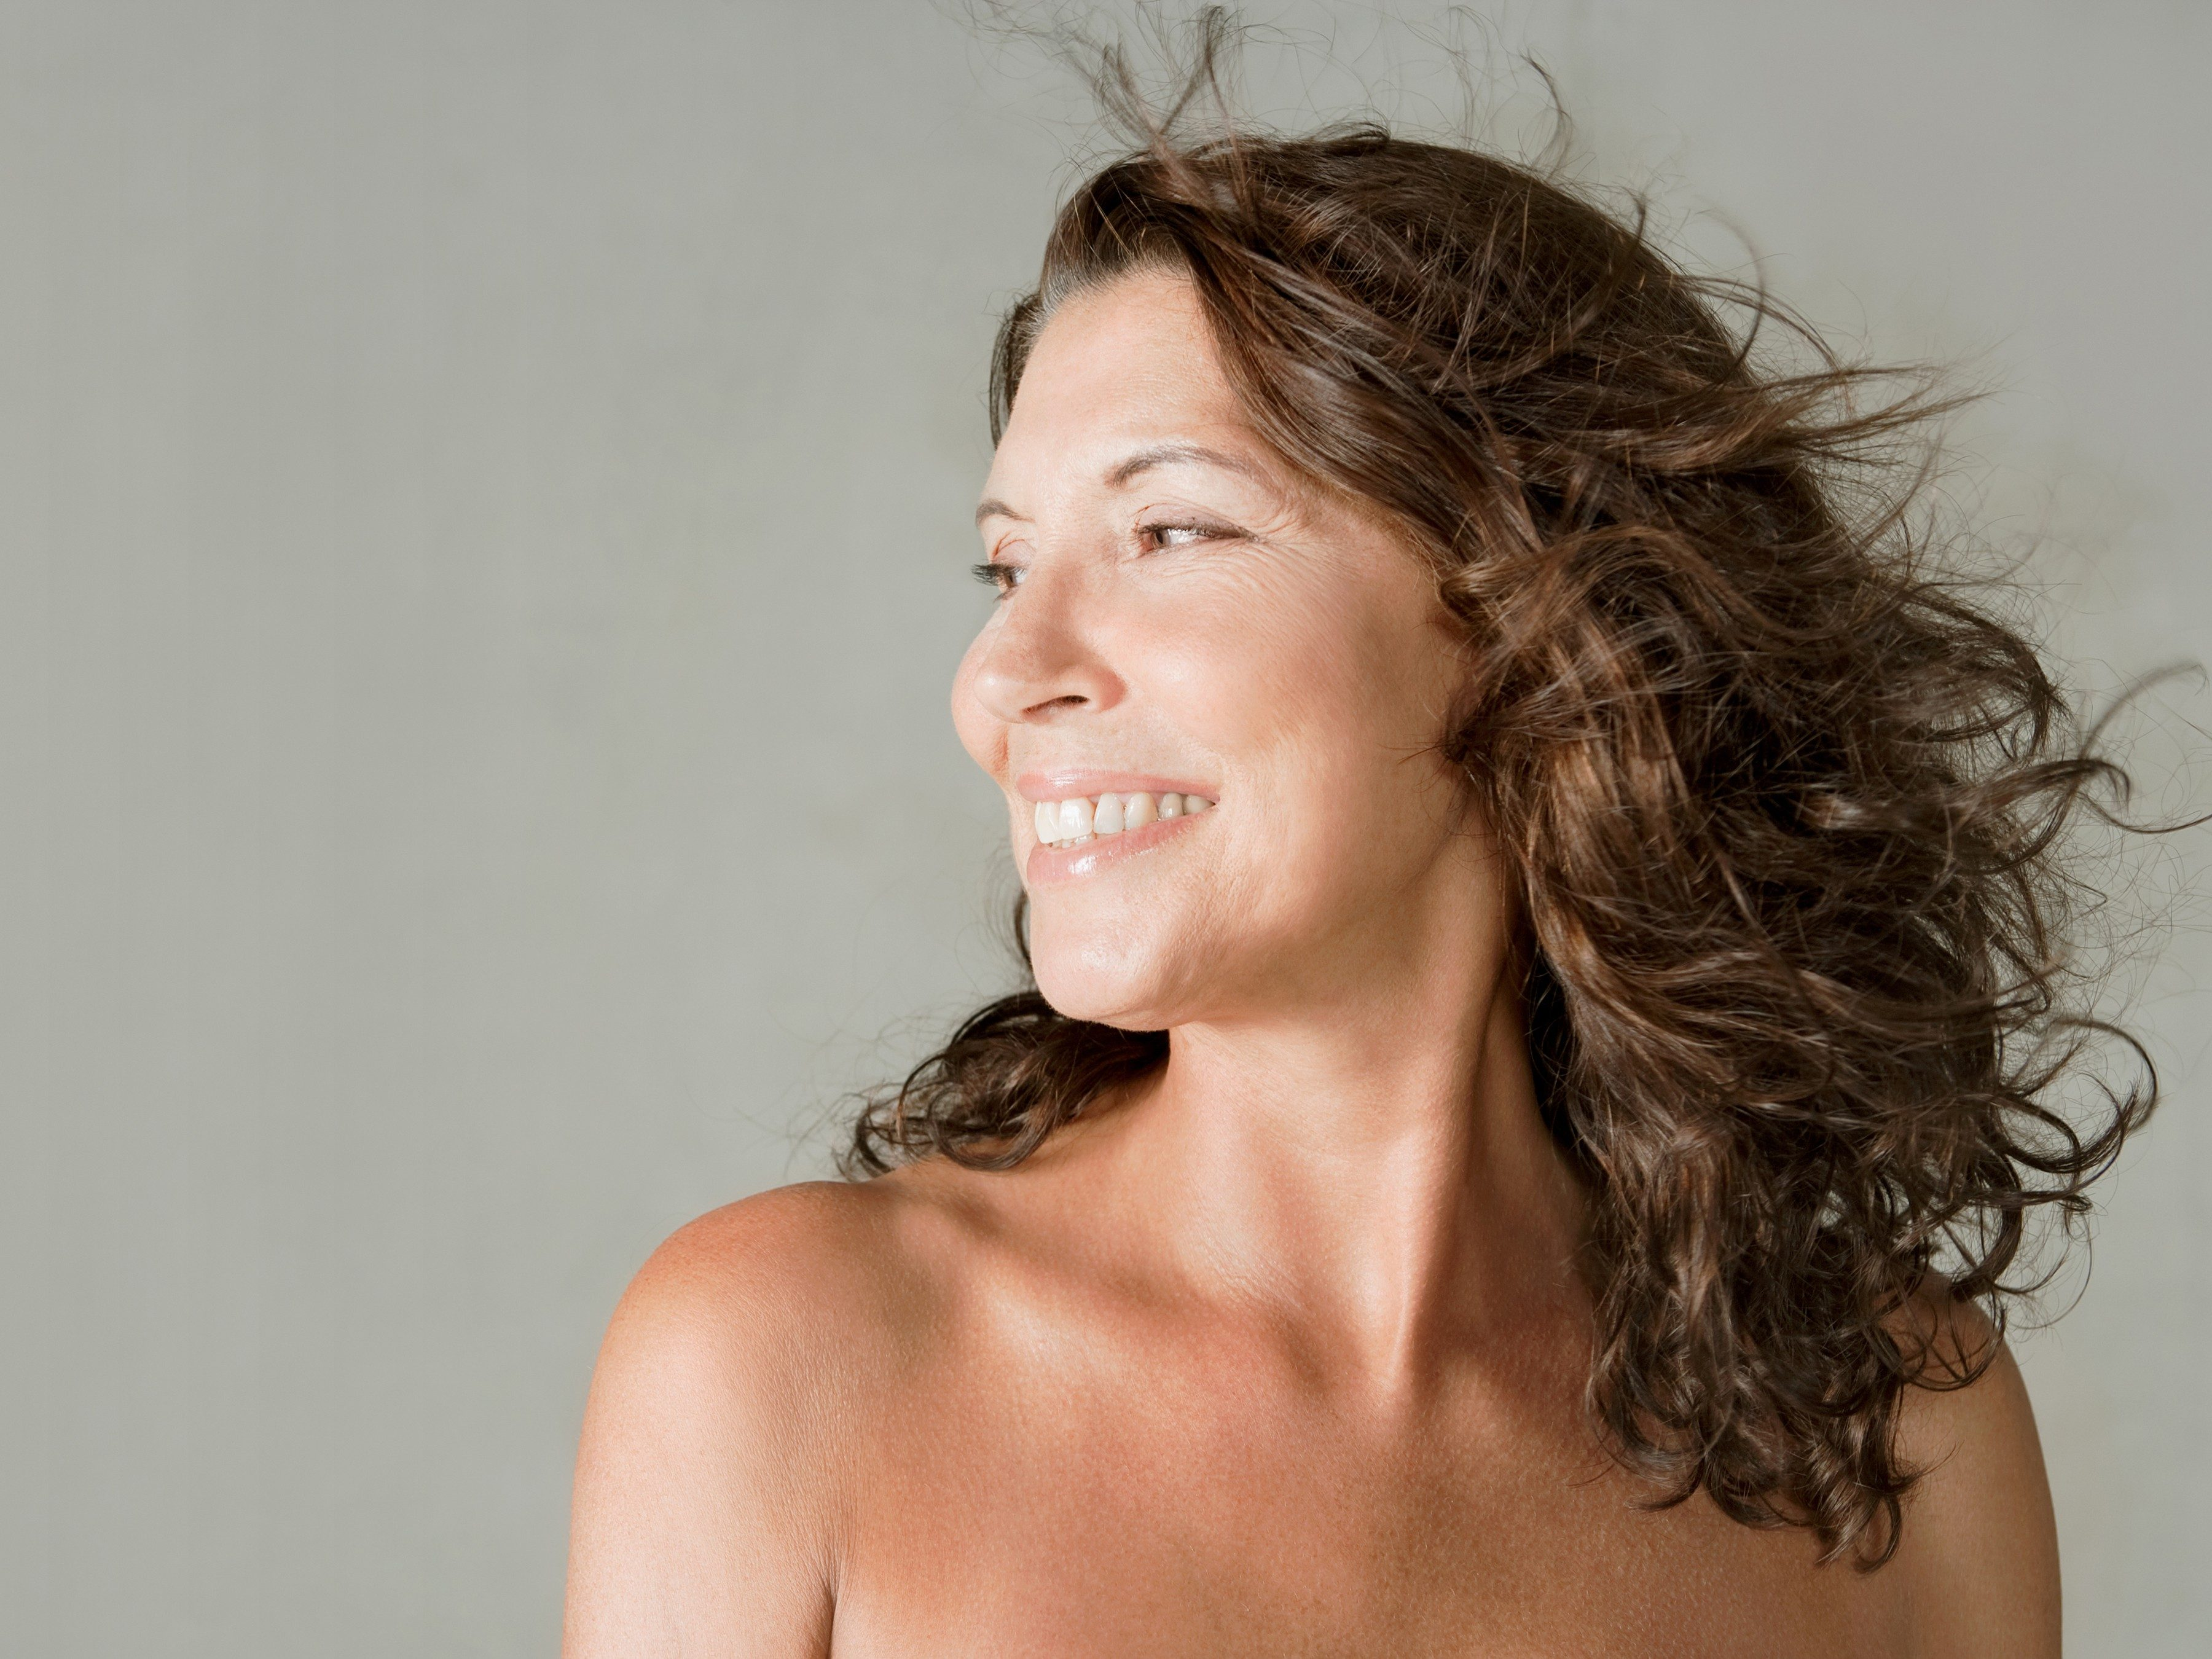 1. Consider cosmetic treatments